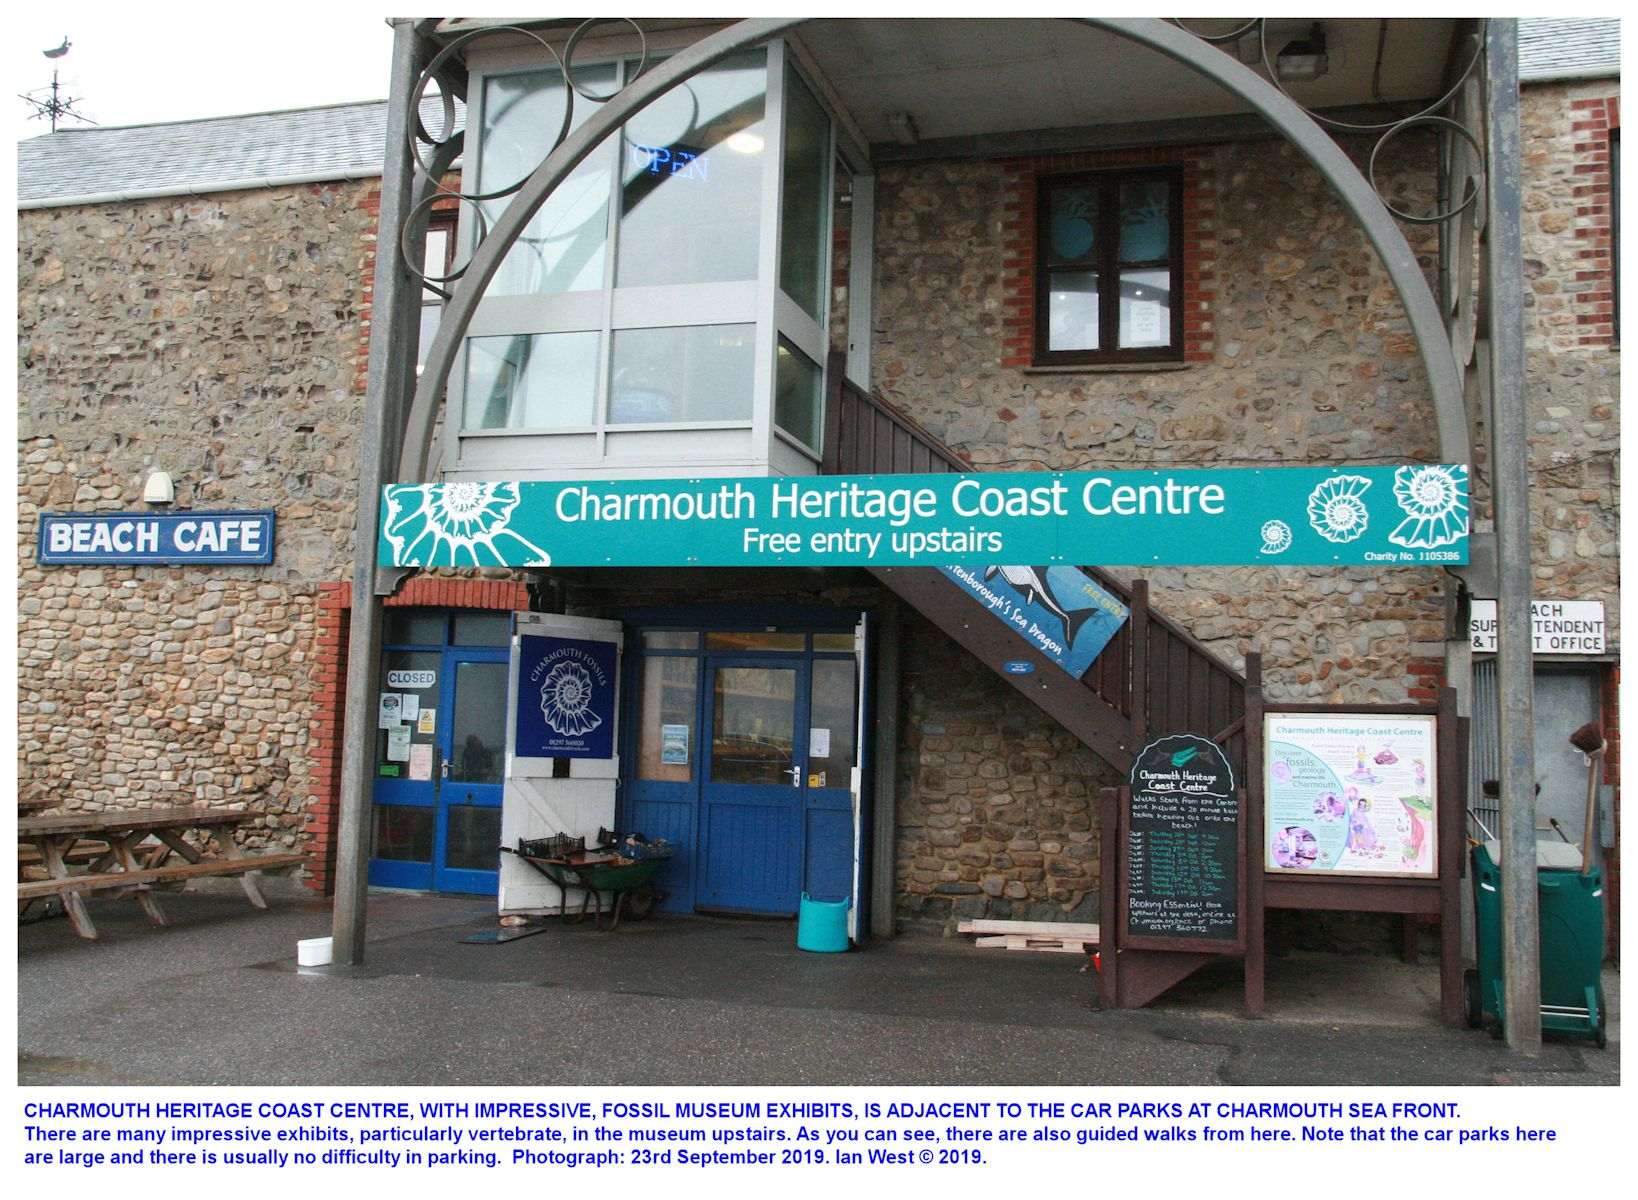 The Heritage Centre at the Old Cement Mill, Charmouth, Dorset as seen in September 2019